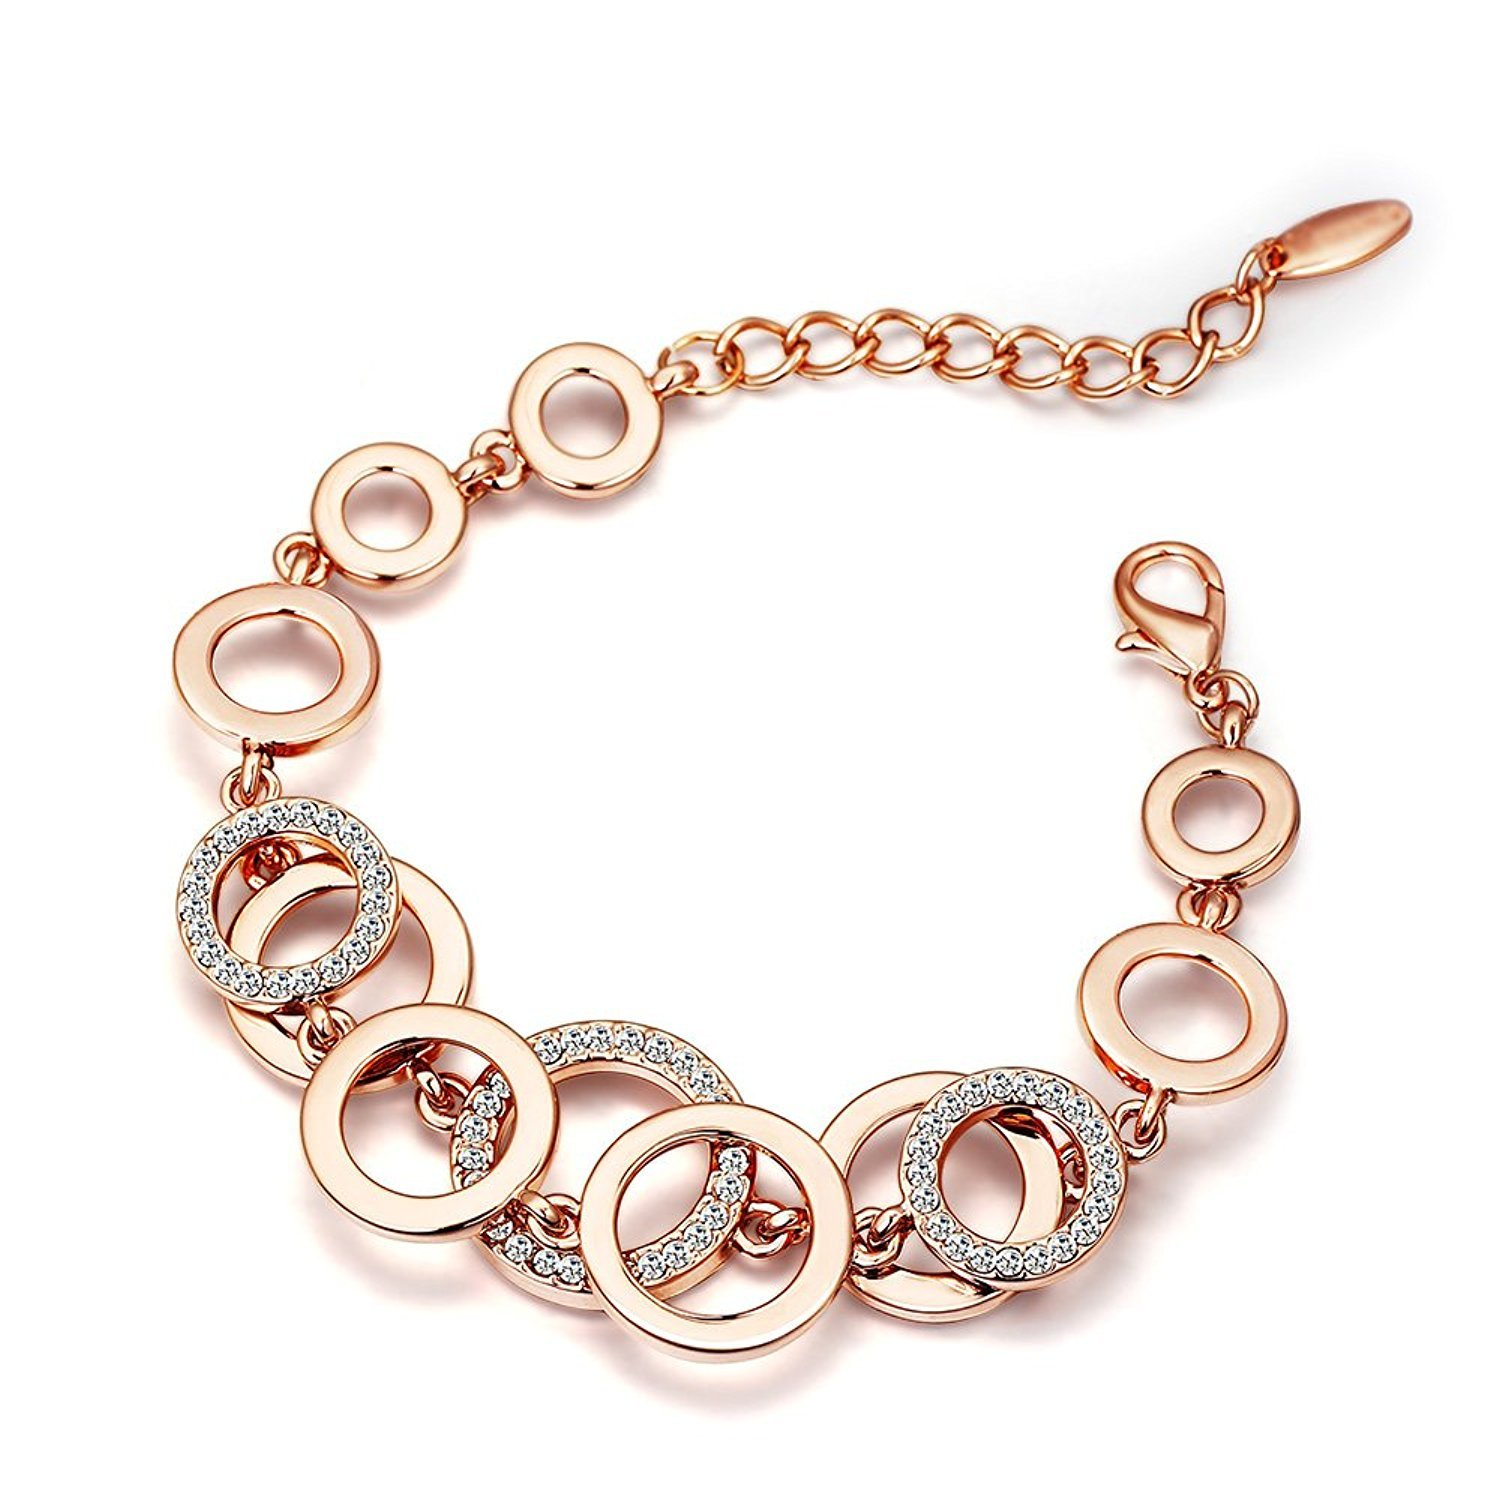 YouBella Jewellery Bracelets for Women Rose Gold Plated Crystal Bracelet Bangle Jewellery for Girls and Women